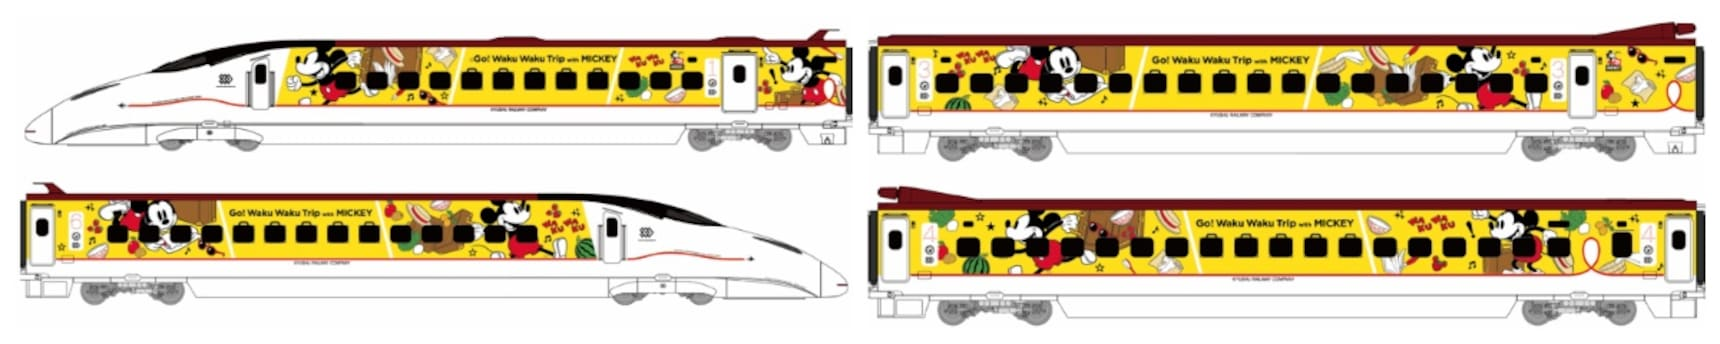 All Aboard the Mickey Mouse Bullet Train!